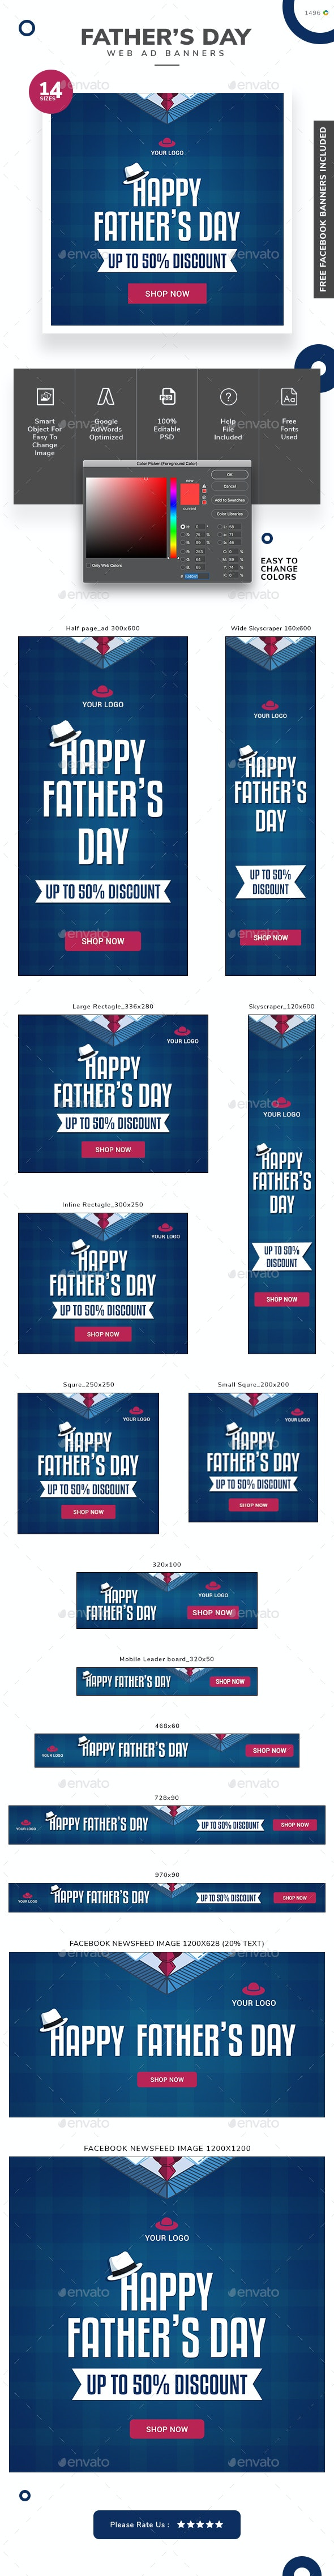 Fathers Day Banners - Banners & Ads Web Elements